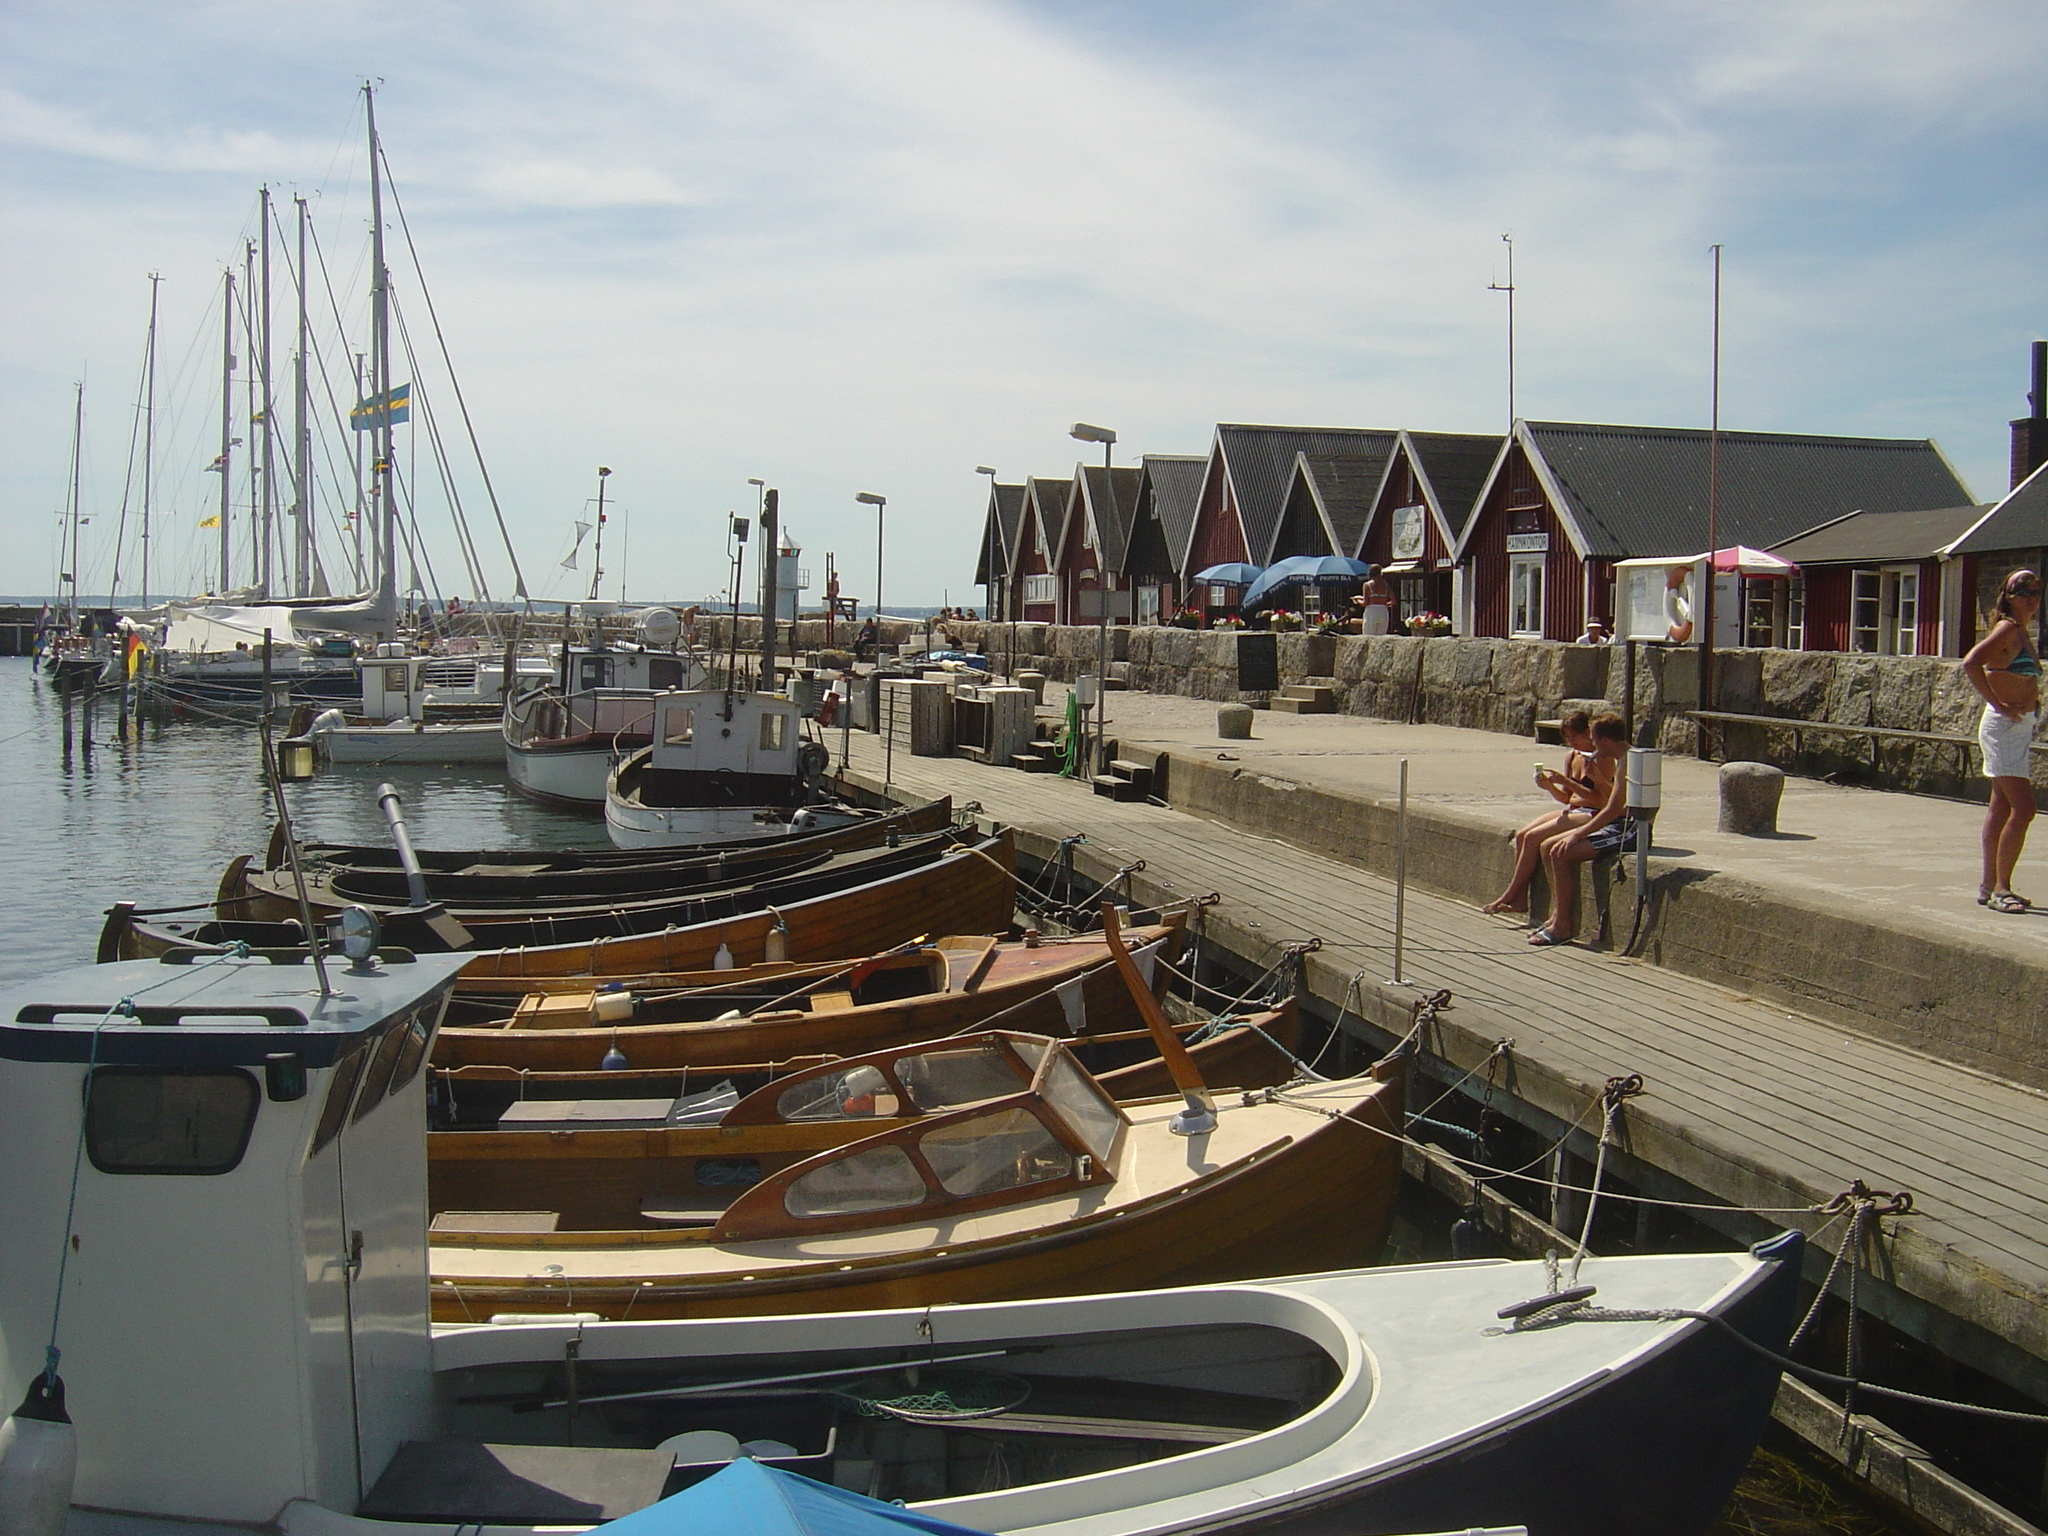 Boats docked at Swedish harbour